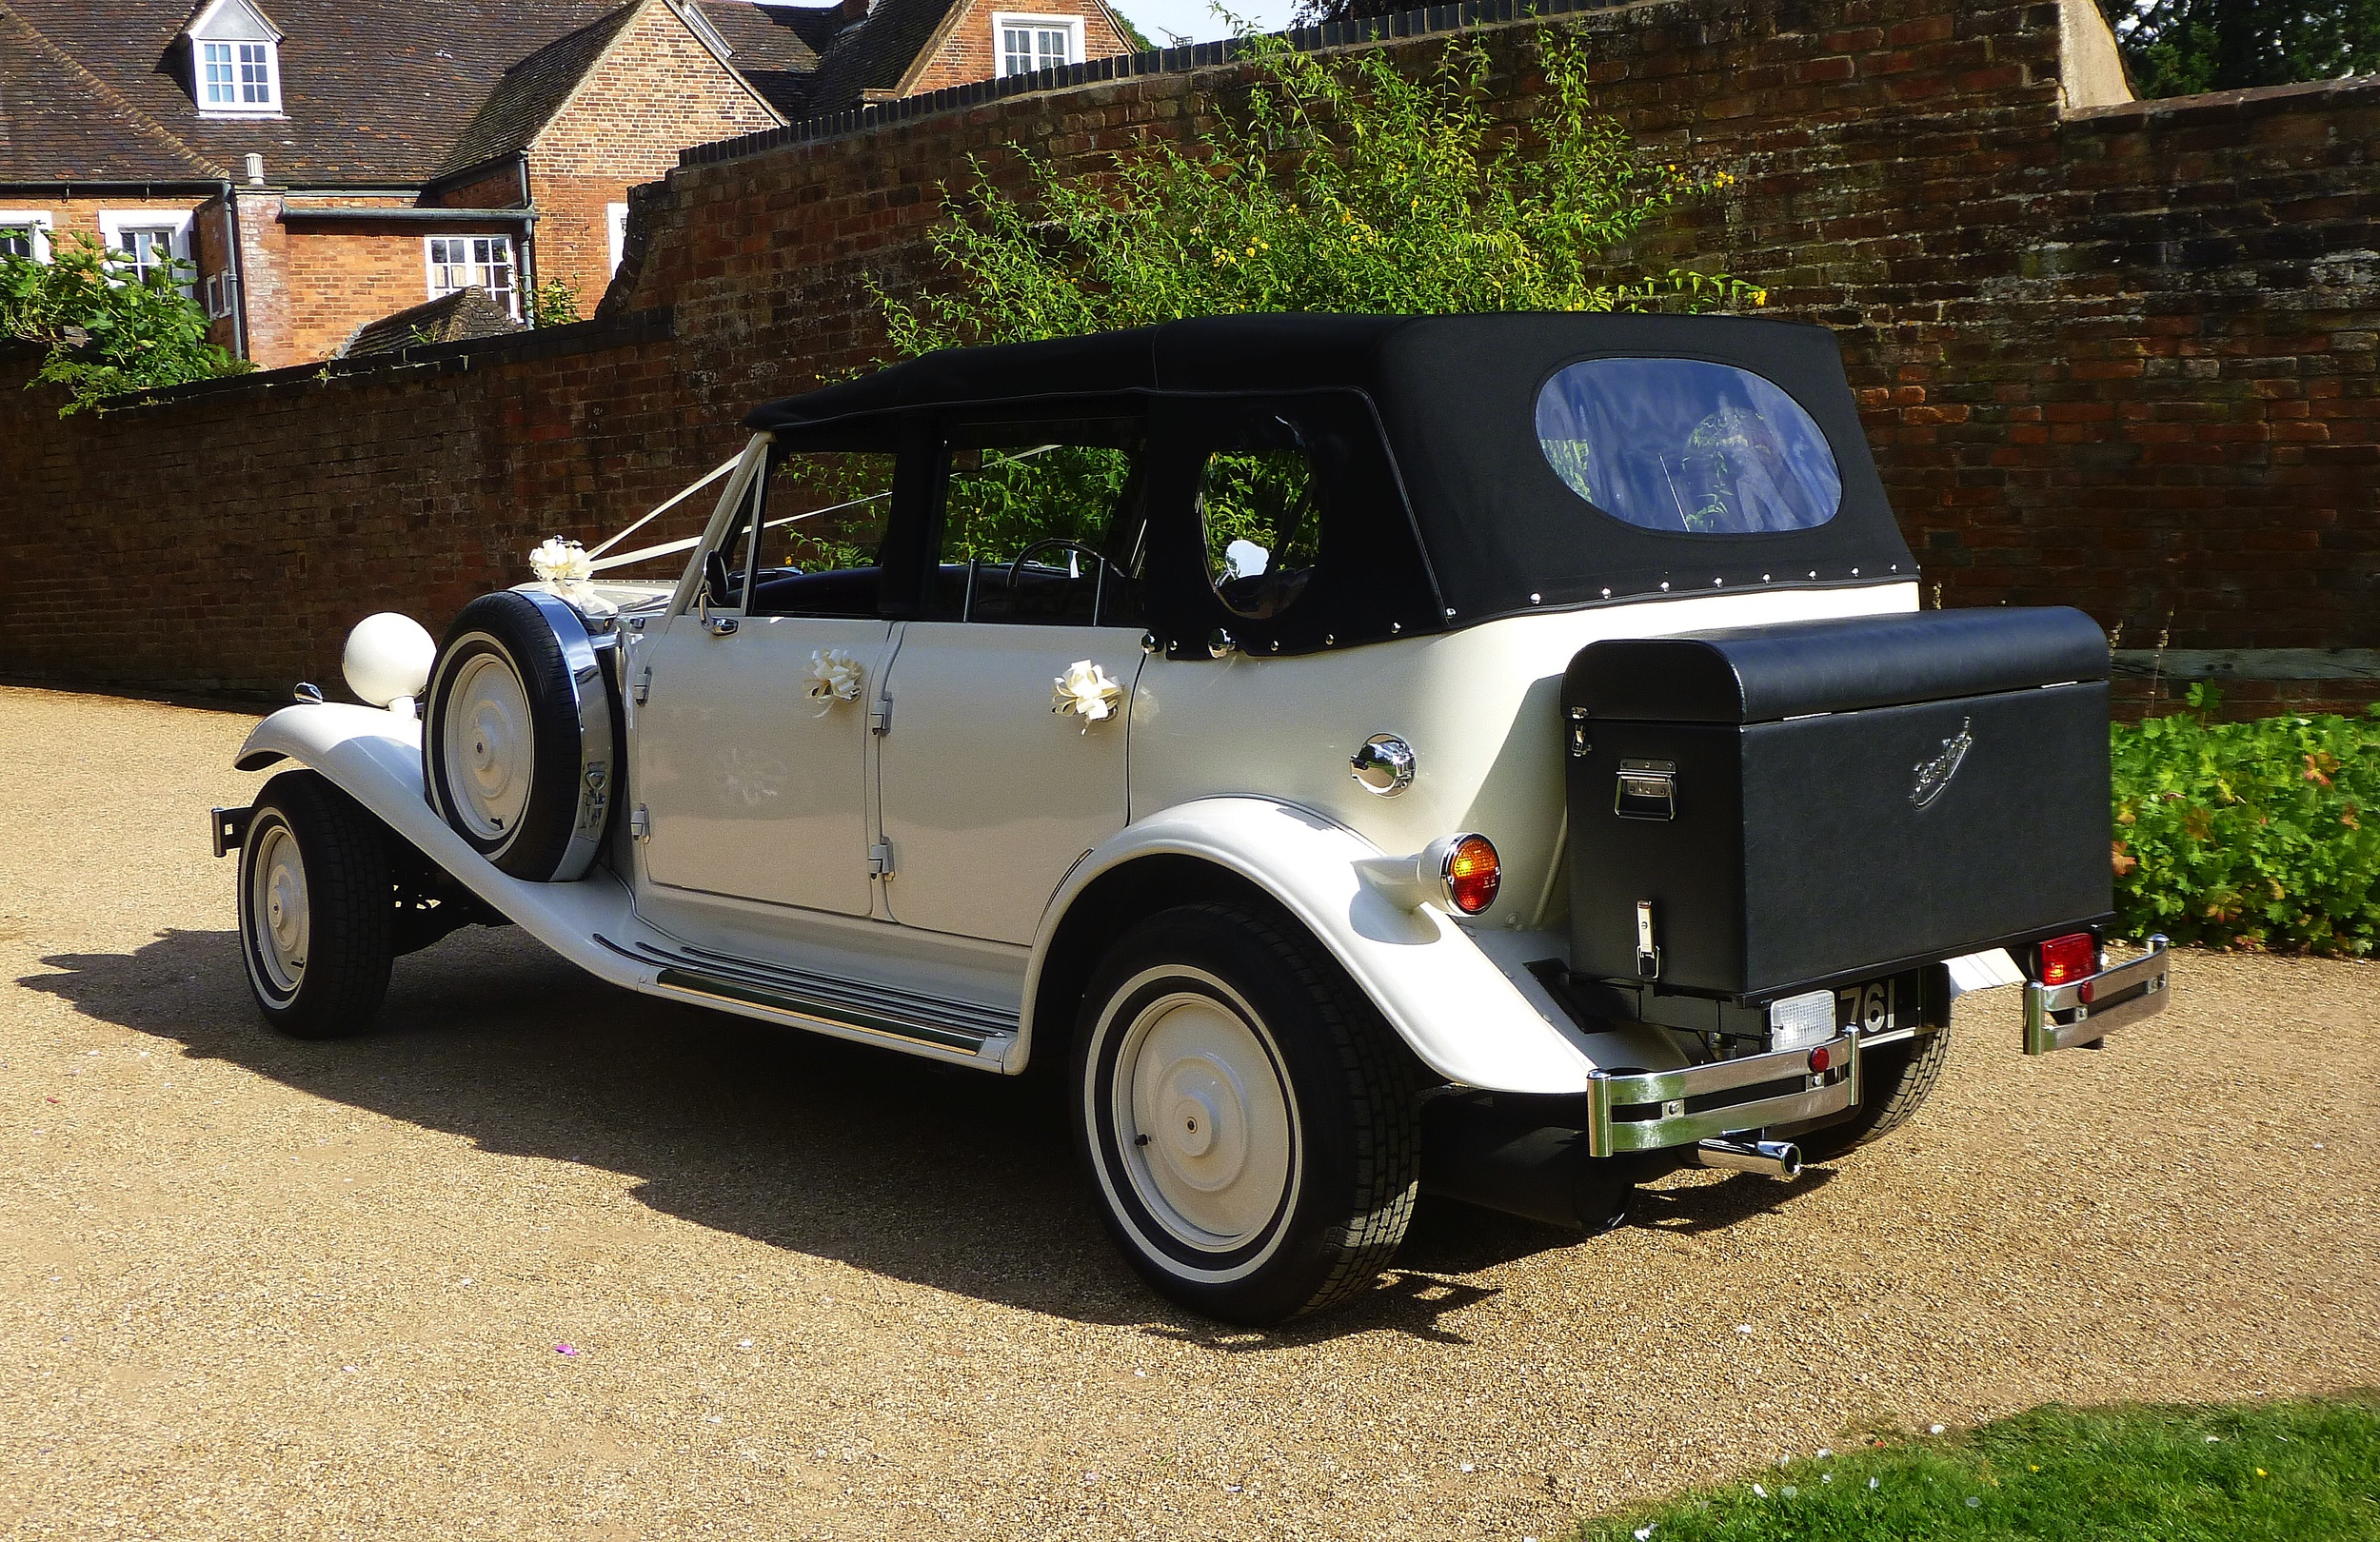 "I thought this was a useful image of the Beauford showing the very smart new hood. The passengers, Vas and Antony were taking part in a ""photo shoot"" in the village of Berkswell, Nr Coventry. We were on our way to the reception venue  at The Hilton, NEC. Earlier Vas and her Father had made the journey from Ashby de la Zouch to the Greek Orthodox Church in Coventry. Although a little late leaving we arrived ""almost"" on time thanks to kind traffic conditions on a Sunday afternoon. Our longest distance wedding of the year at 94miles. A good fun occasion!"